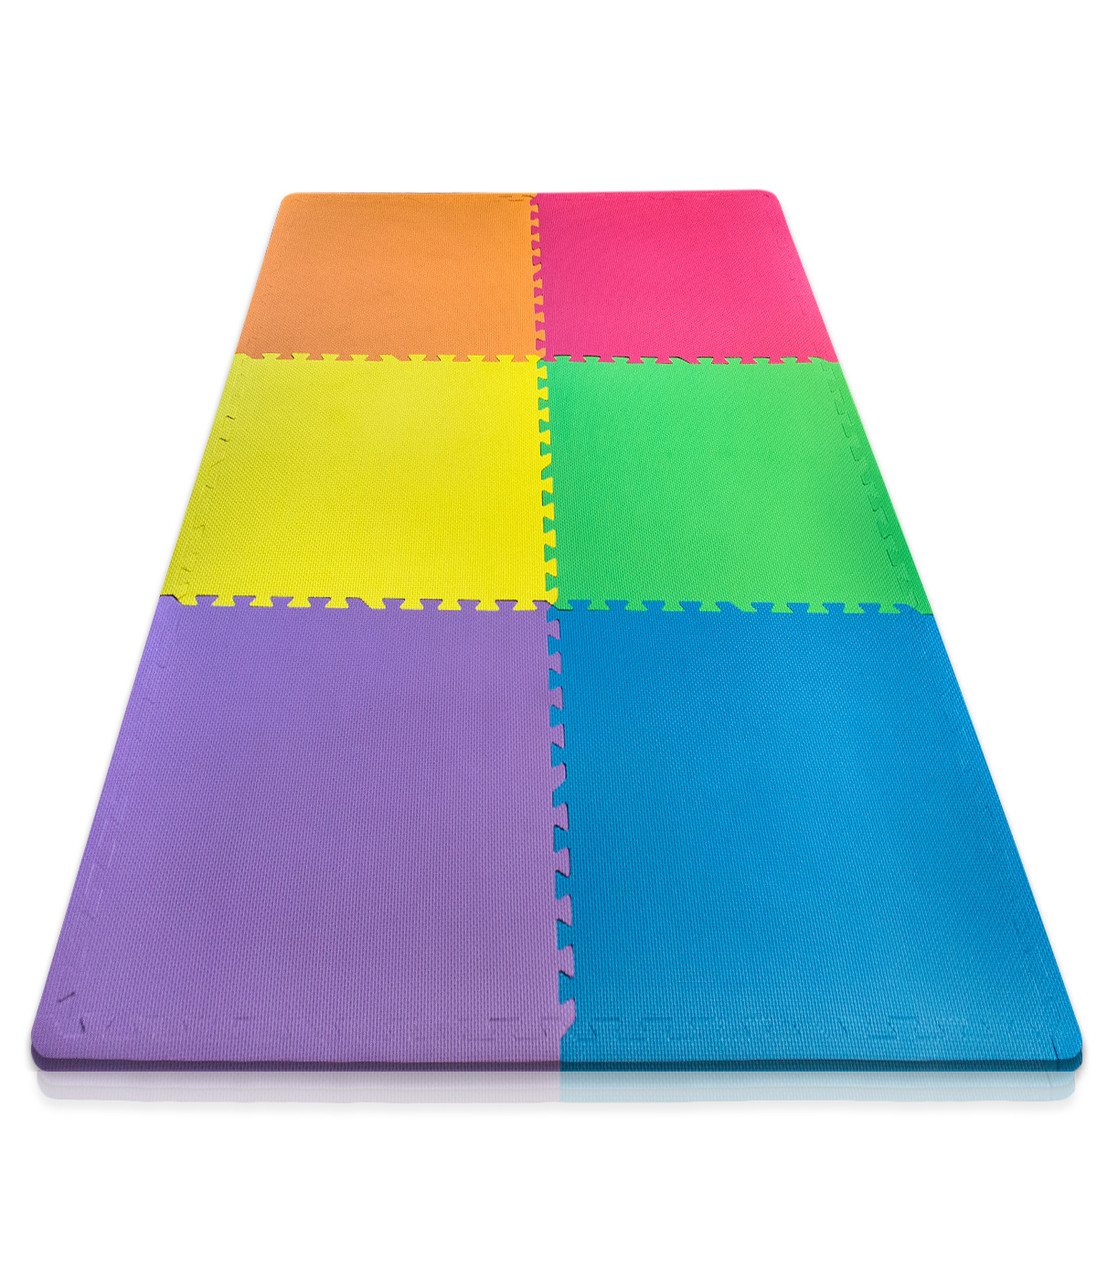 Sivan Health and Fitness Health and Fitness® Puzzle Exercise Mat Colorful  High Quality EVA Foam Interlocking Tiles